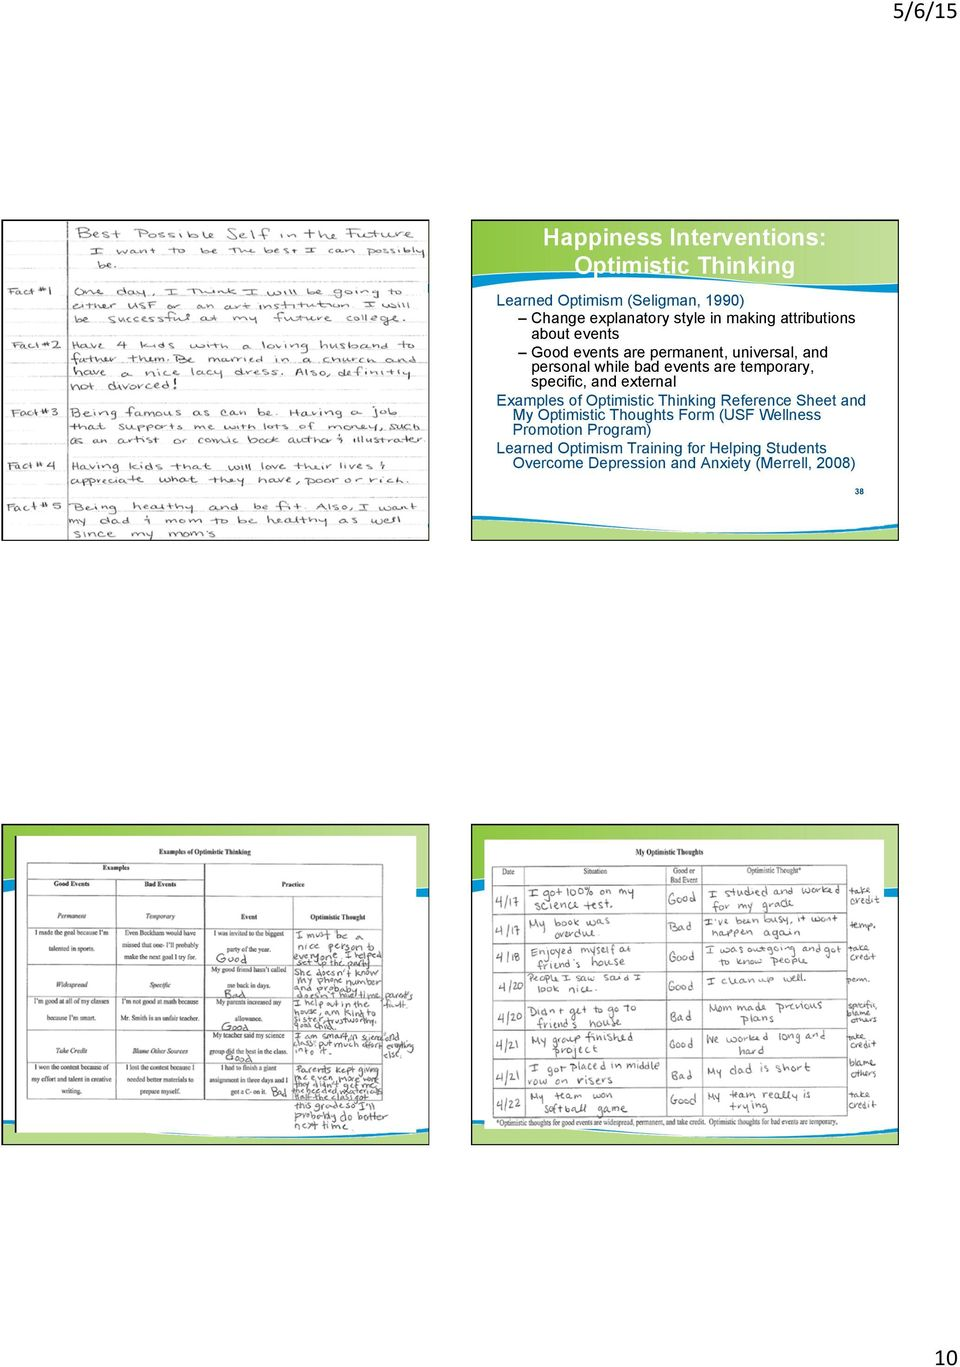 external Examples of Optimistic Thinking Reference Sheet and My Optimistic Thoughts Form (USF Wellness